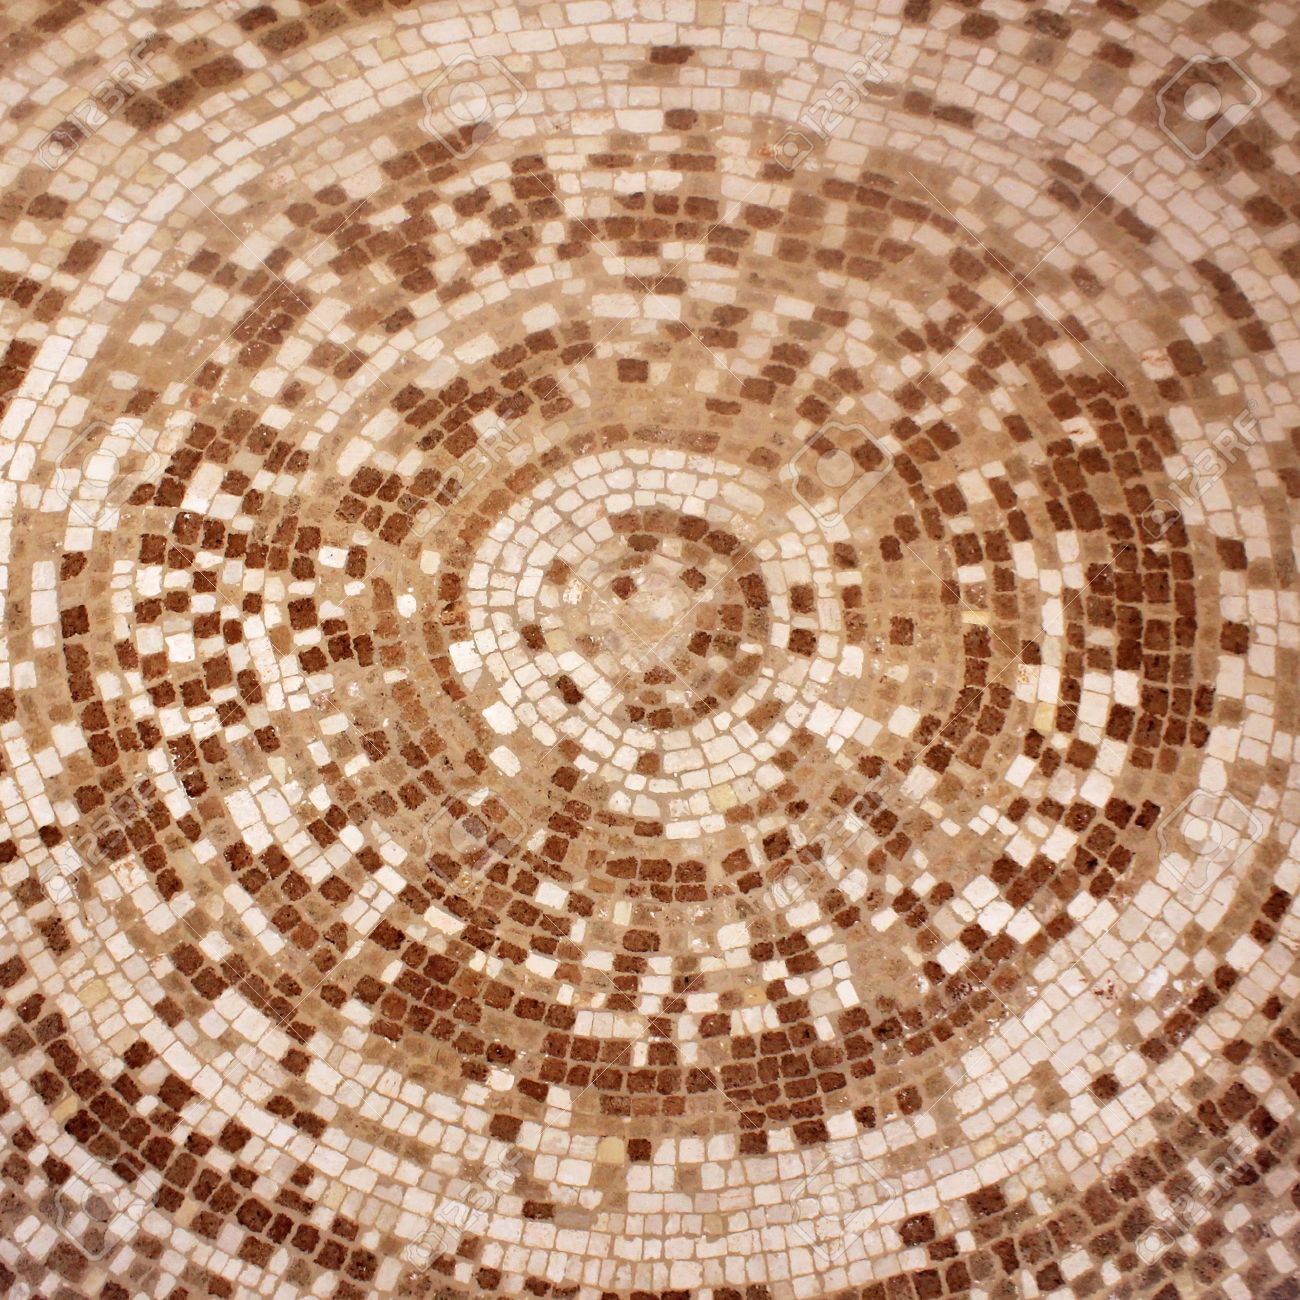 Old roman beige and brown mosaic ceramic tiles in circle pattern old roman beige and brown mosaic ceramic tiles in circle pattern stock photo 60160760 dailygadgetfo Image collections